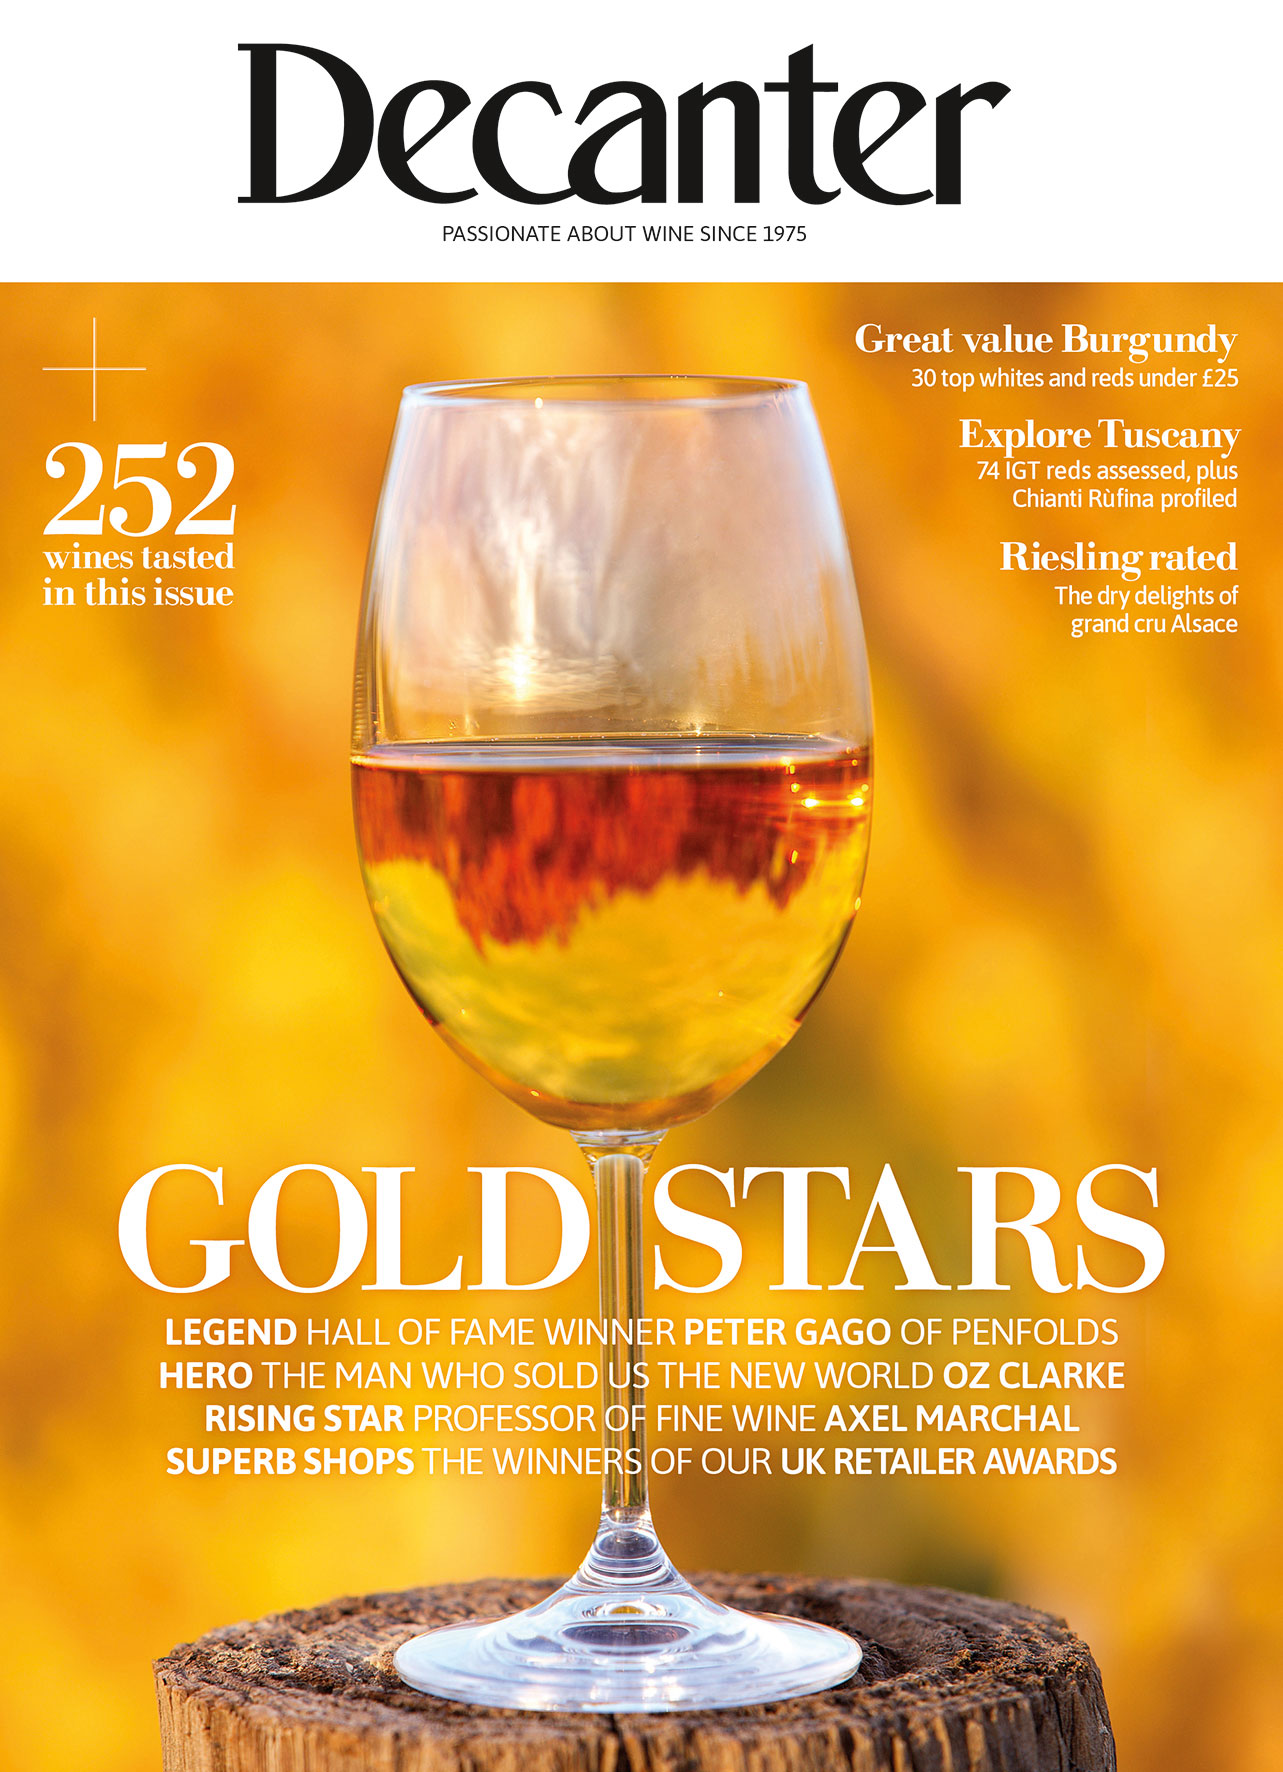 Decanter magazine latest issue out now: November 2021